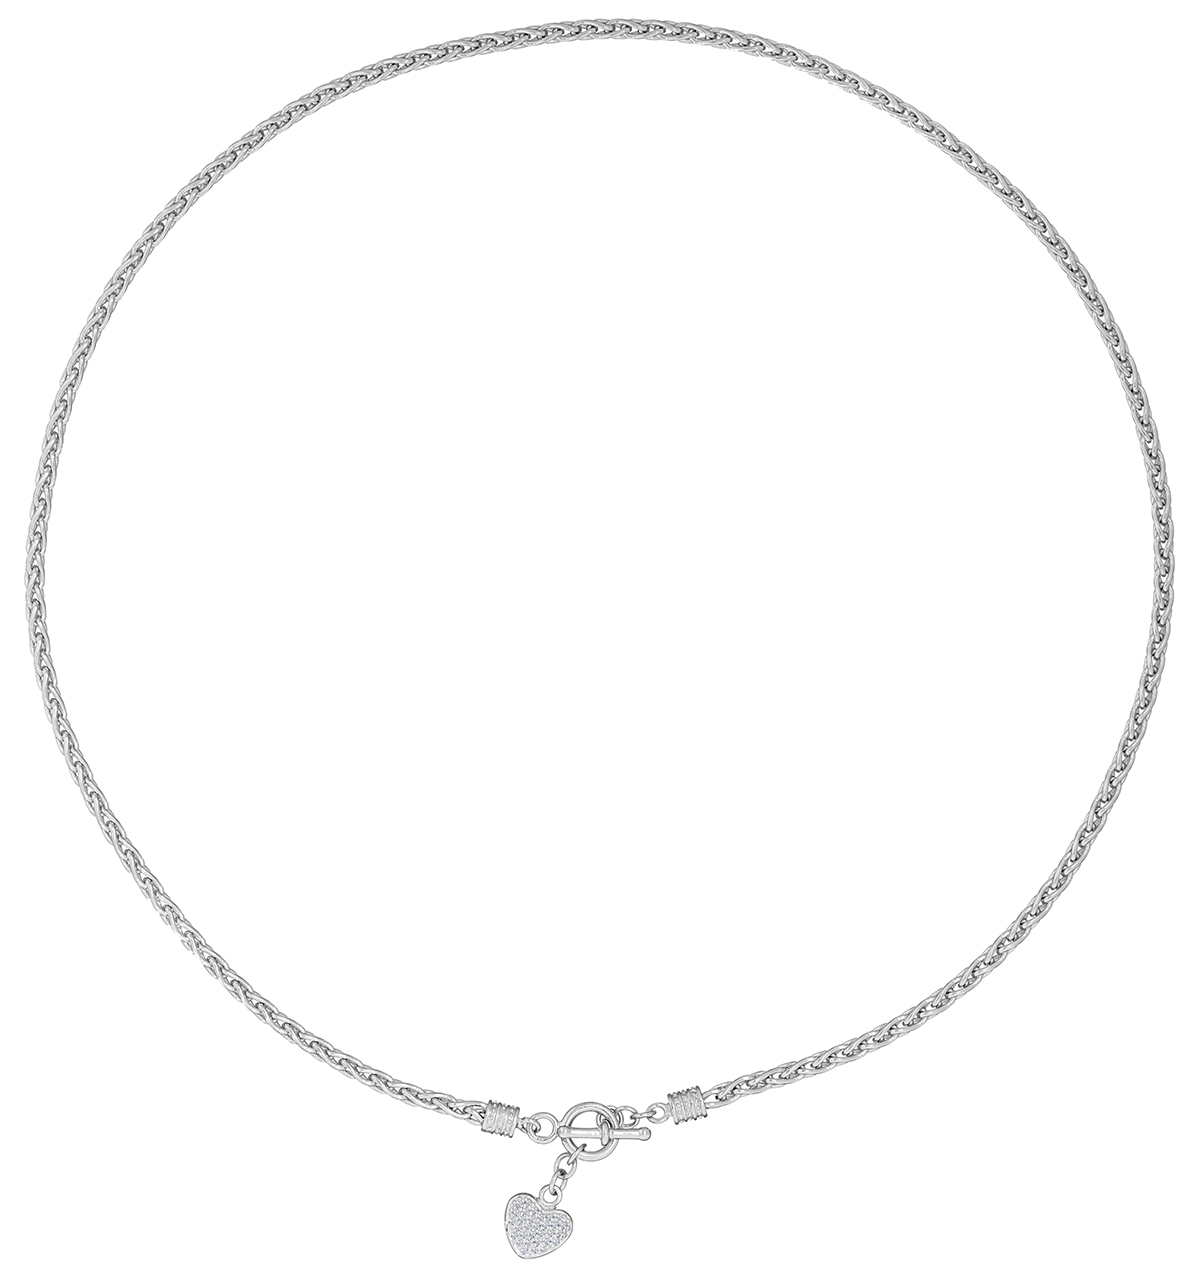 SILVER AND DIAMOND HEART BYZANTINE NECKLACE - TESORO COLLECTION